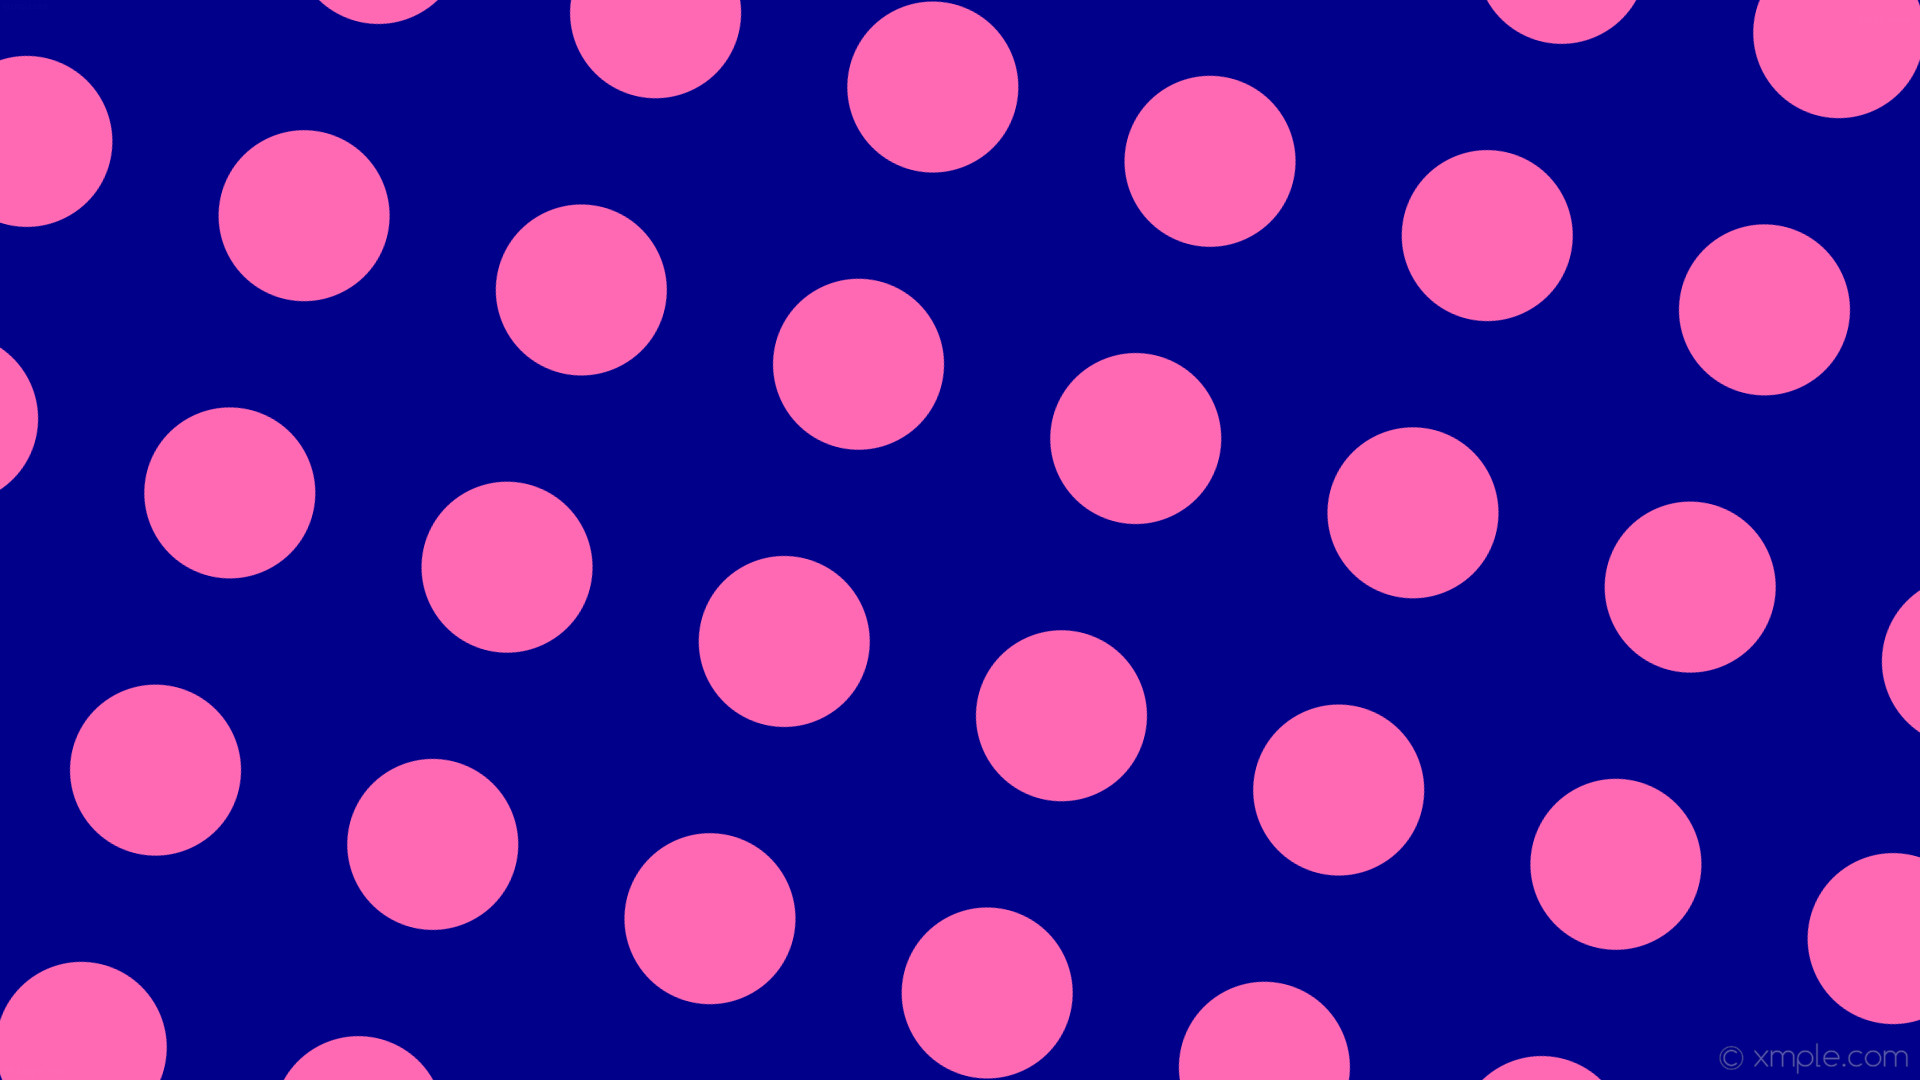 wallpaper spots blue pink polka dots dark blue hot pink #00008b #ff69b4 165°